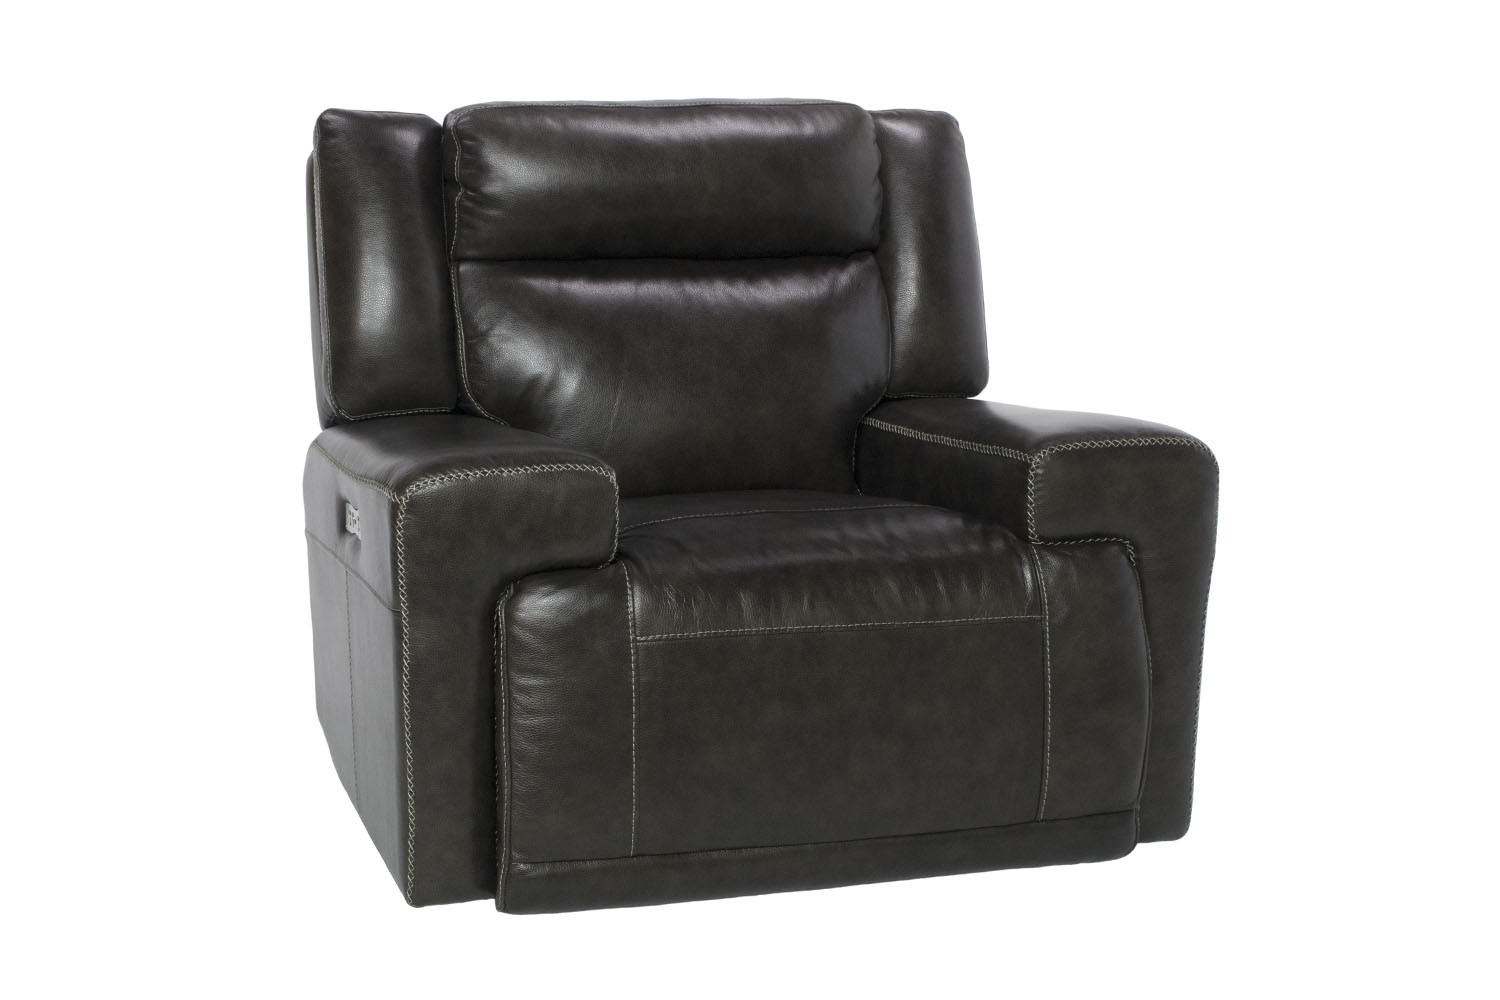 Recliners | New Year's Sale On 500+ Products Intended For Hercules Chocolate Swivel Glider Recliners (View 21 of 25)